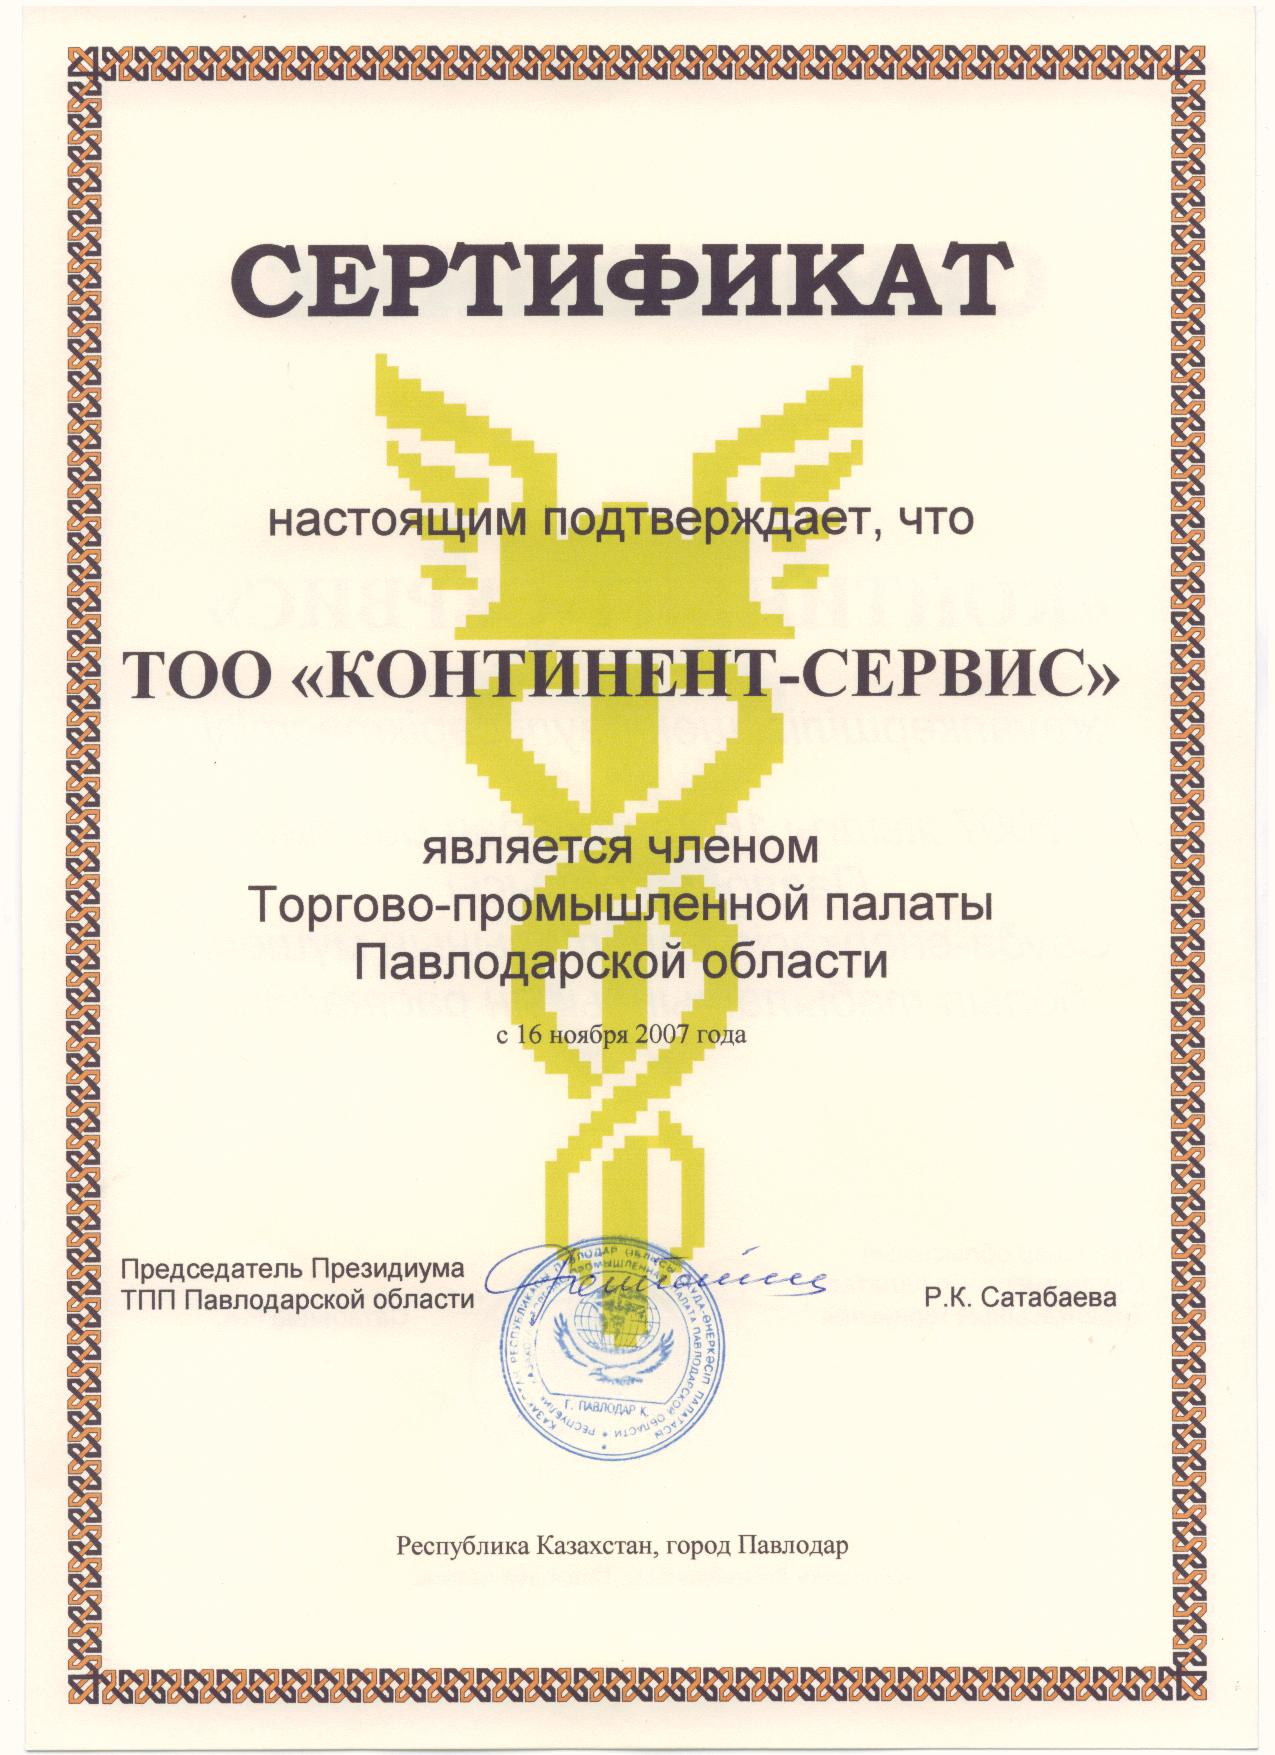 A member of Pavlodar region chamber of commerce and industry